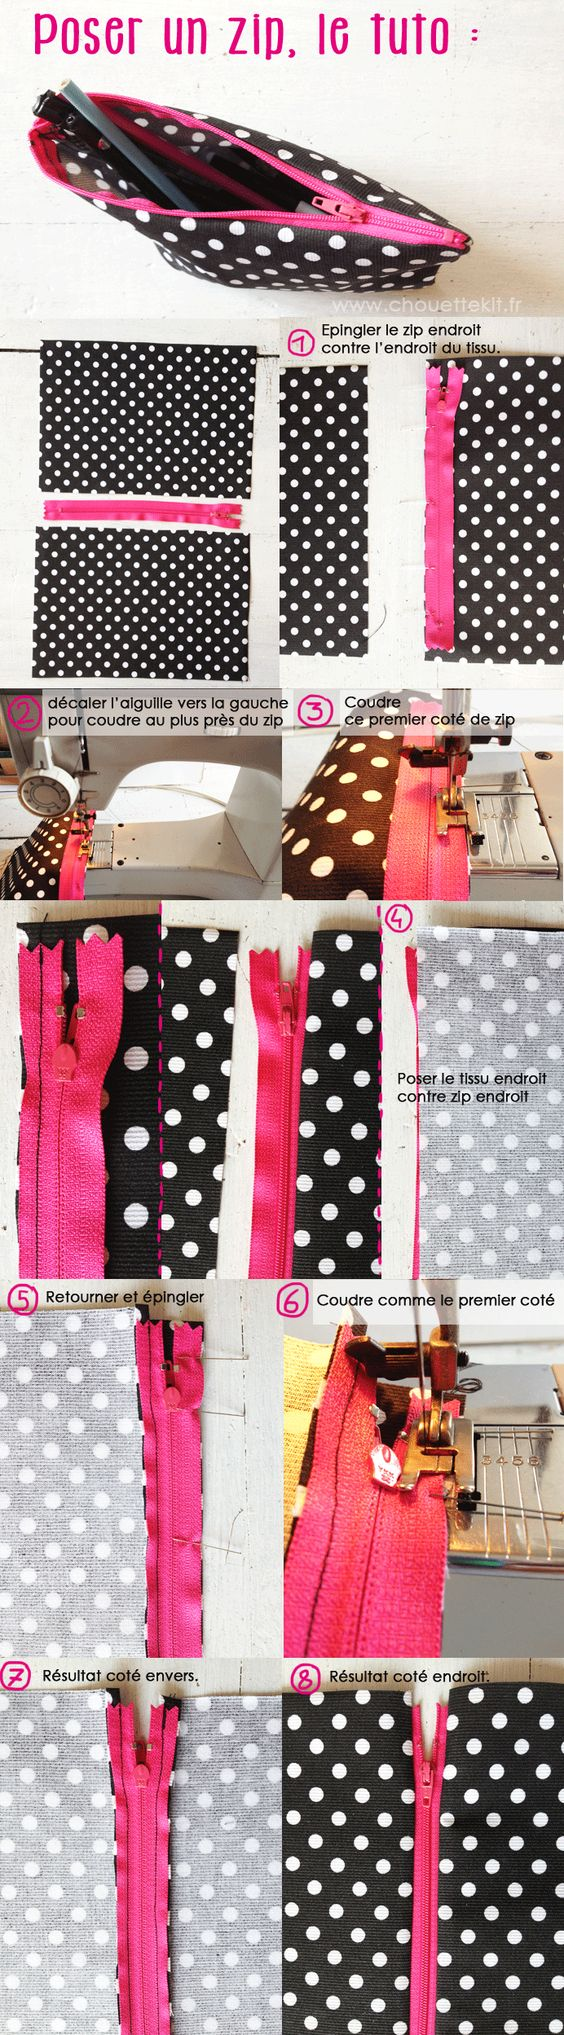 Diy couture coudre and bricolage on pinterest - Poser une fermeture eclair ...